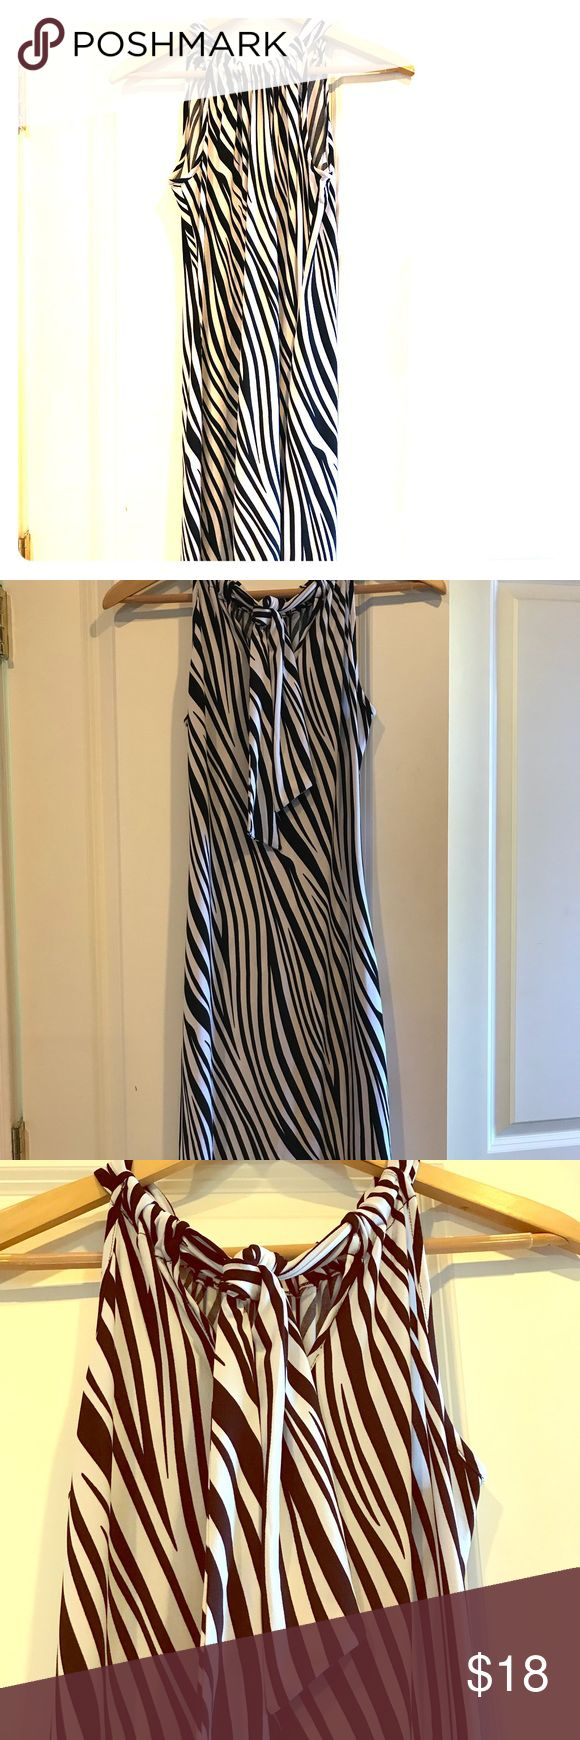 Black House White Market Zebra print dress Super cute Black House White Market Dress Size Small. Ties adjust at back for perfect fit. Worn 1x to a wedding. Great condition. No rips or stains. White House Black Market Dresses